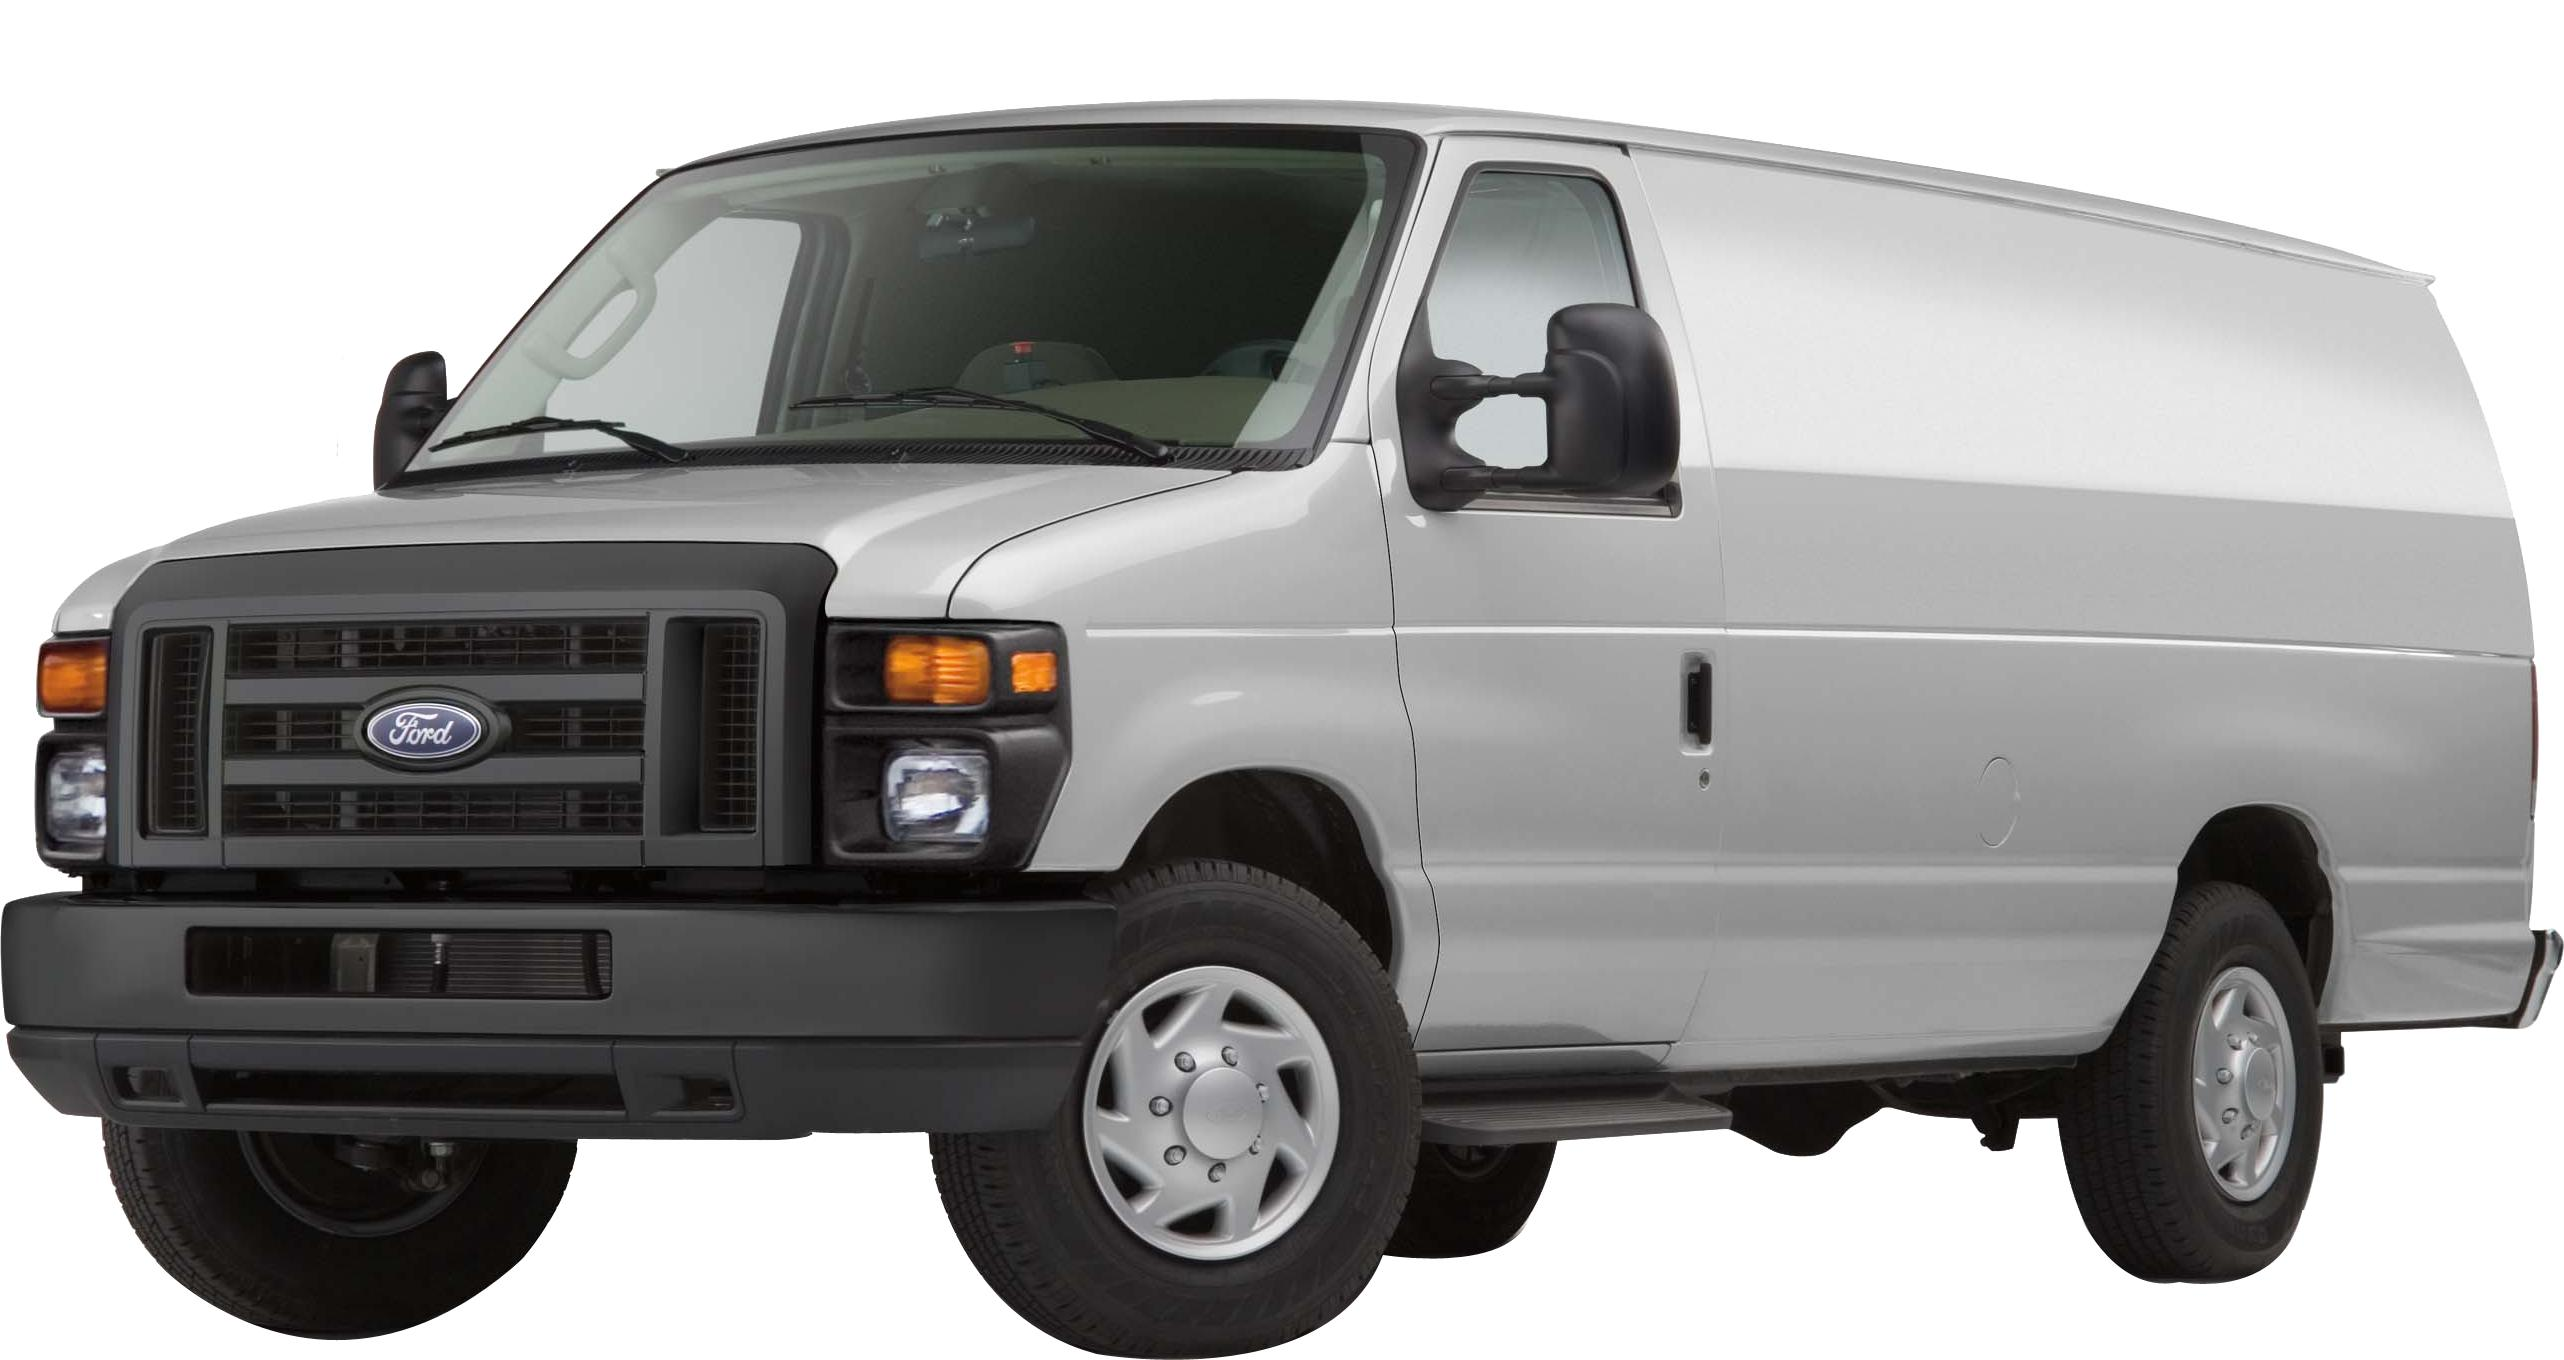 2013 Ford E-series Van #2